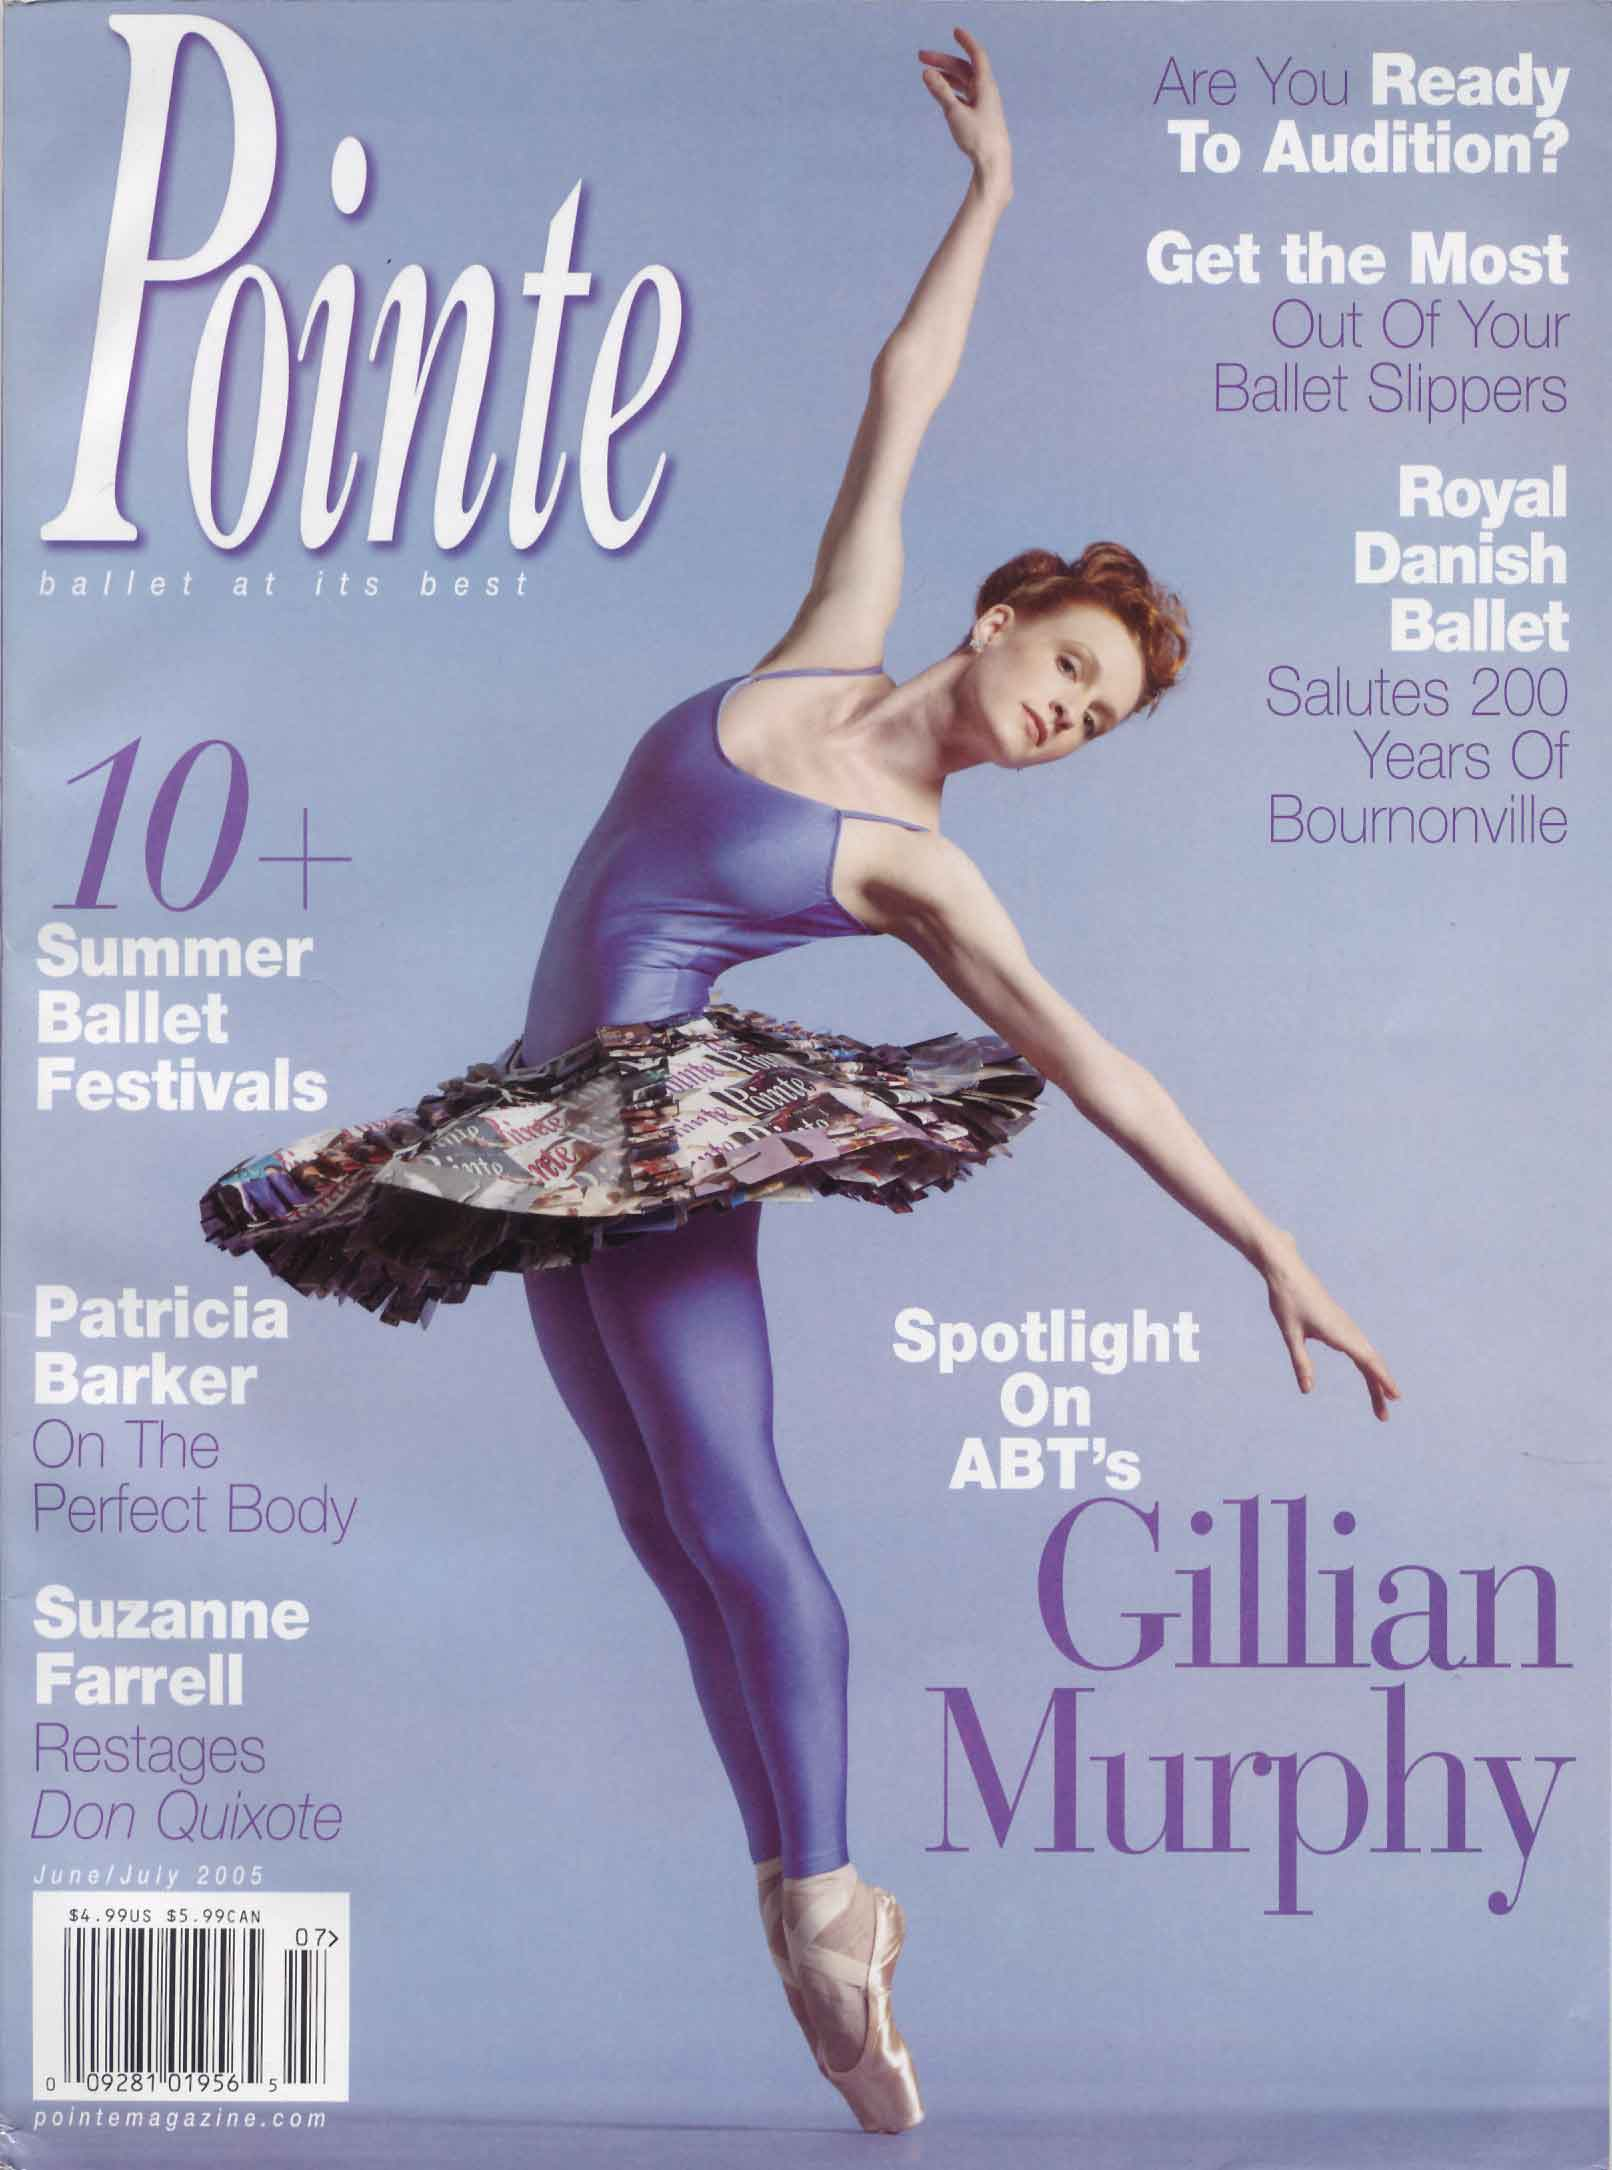 Gillian on the cover of Pointe Magazine, June 2005.